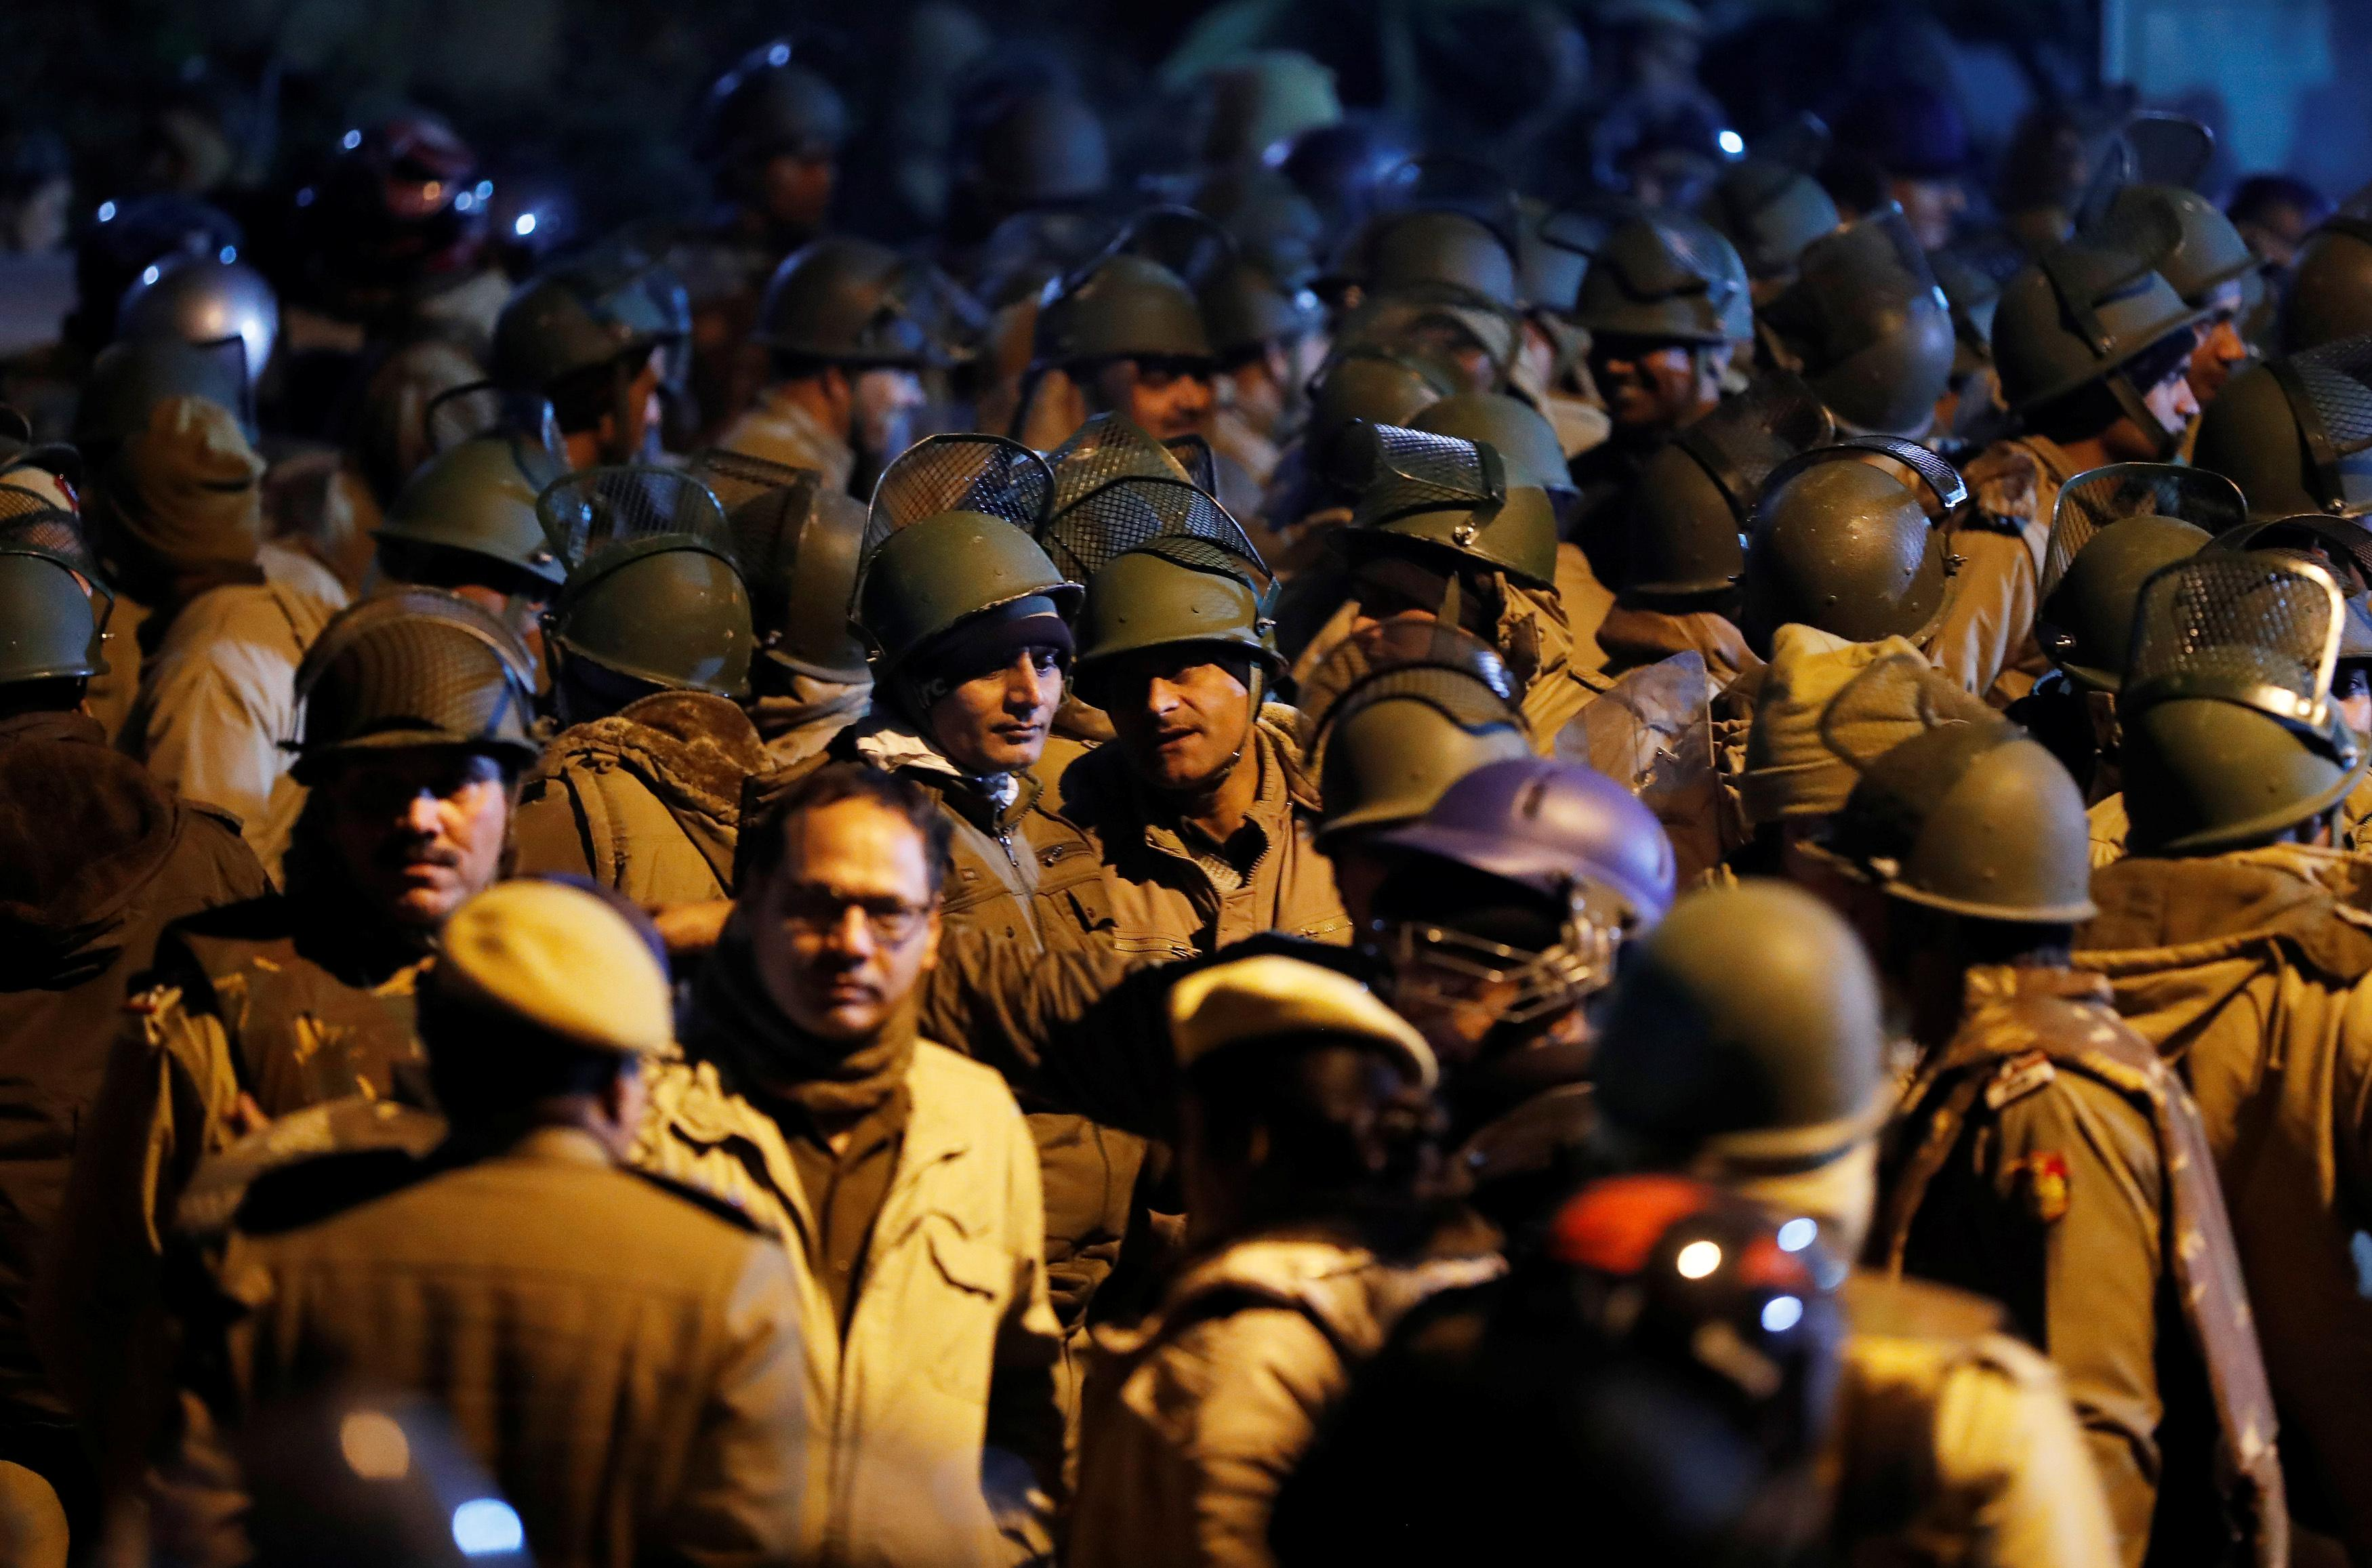 Police in riot gear stand guard outside the Jawaharlal Nehru University (JNU) after clashes between students in New Delhi, India, January 5, 2020. REUTERS/Adnan Abidi